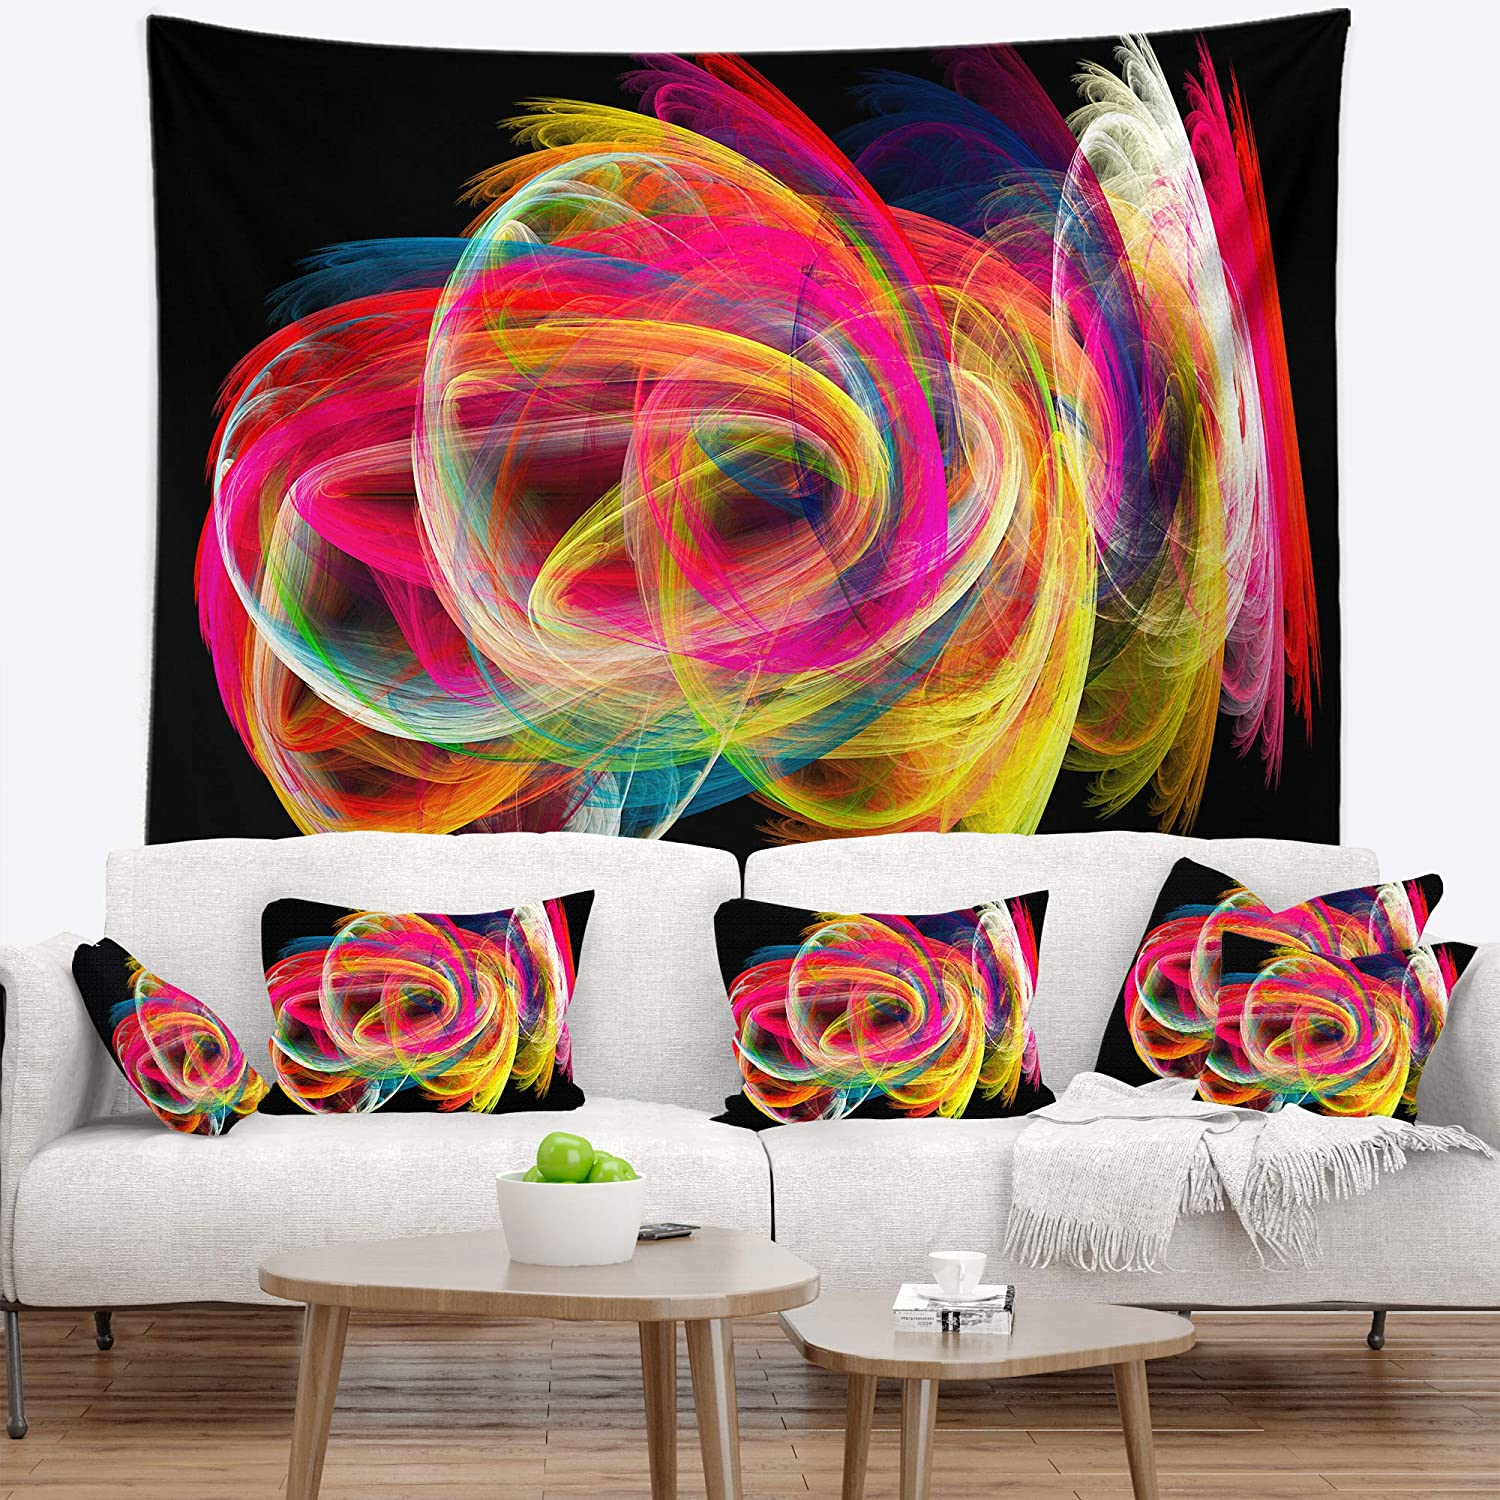 26 x 26 Square Floor Pillow Kess InHouse Sylvia Coomes Balloons in The Sky Photography Kids